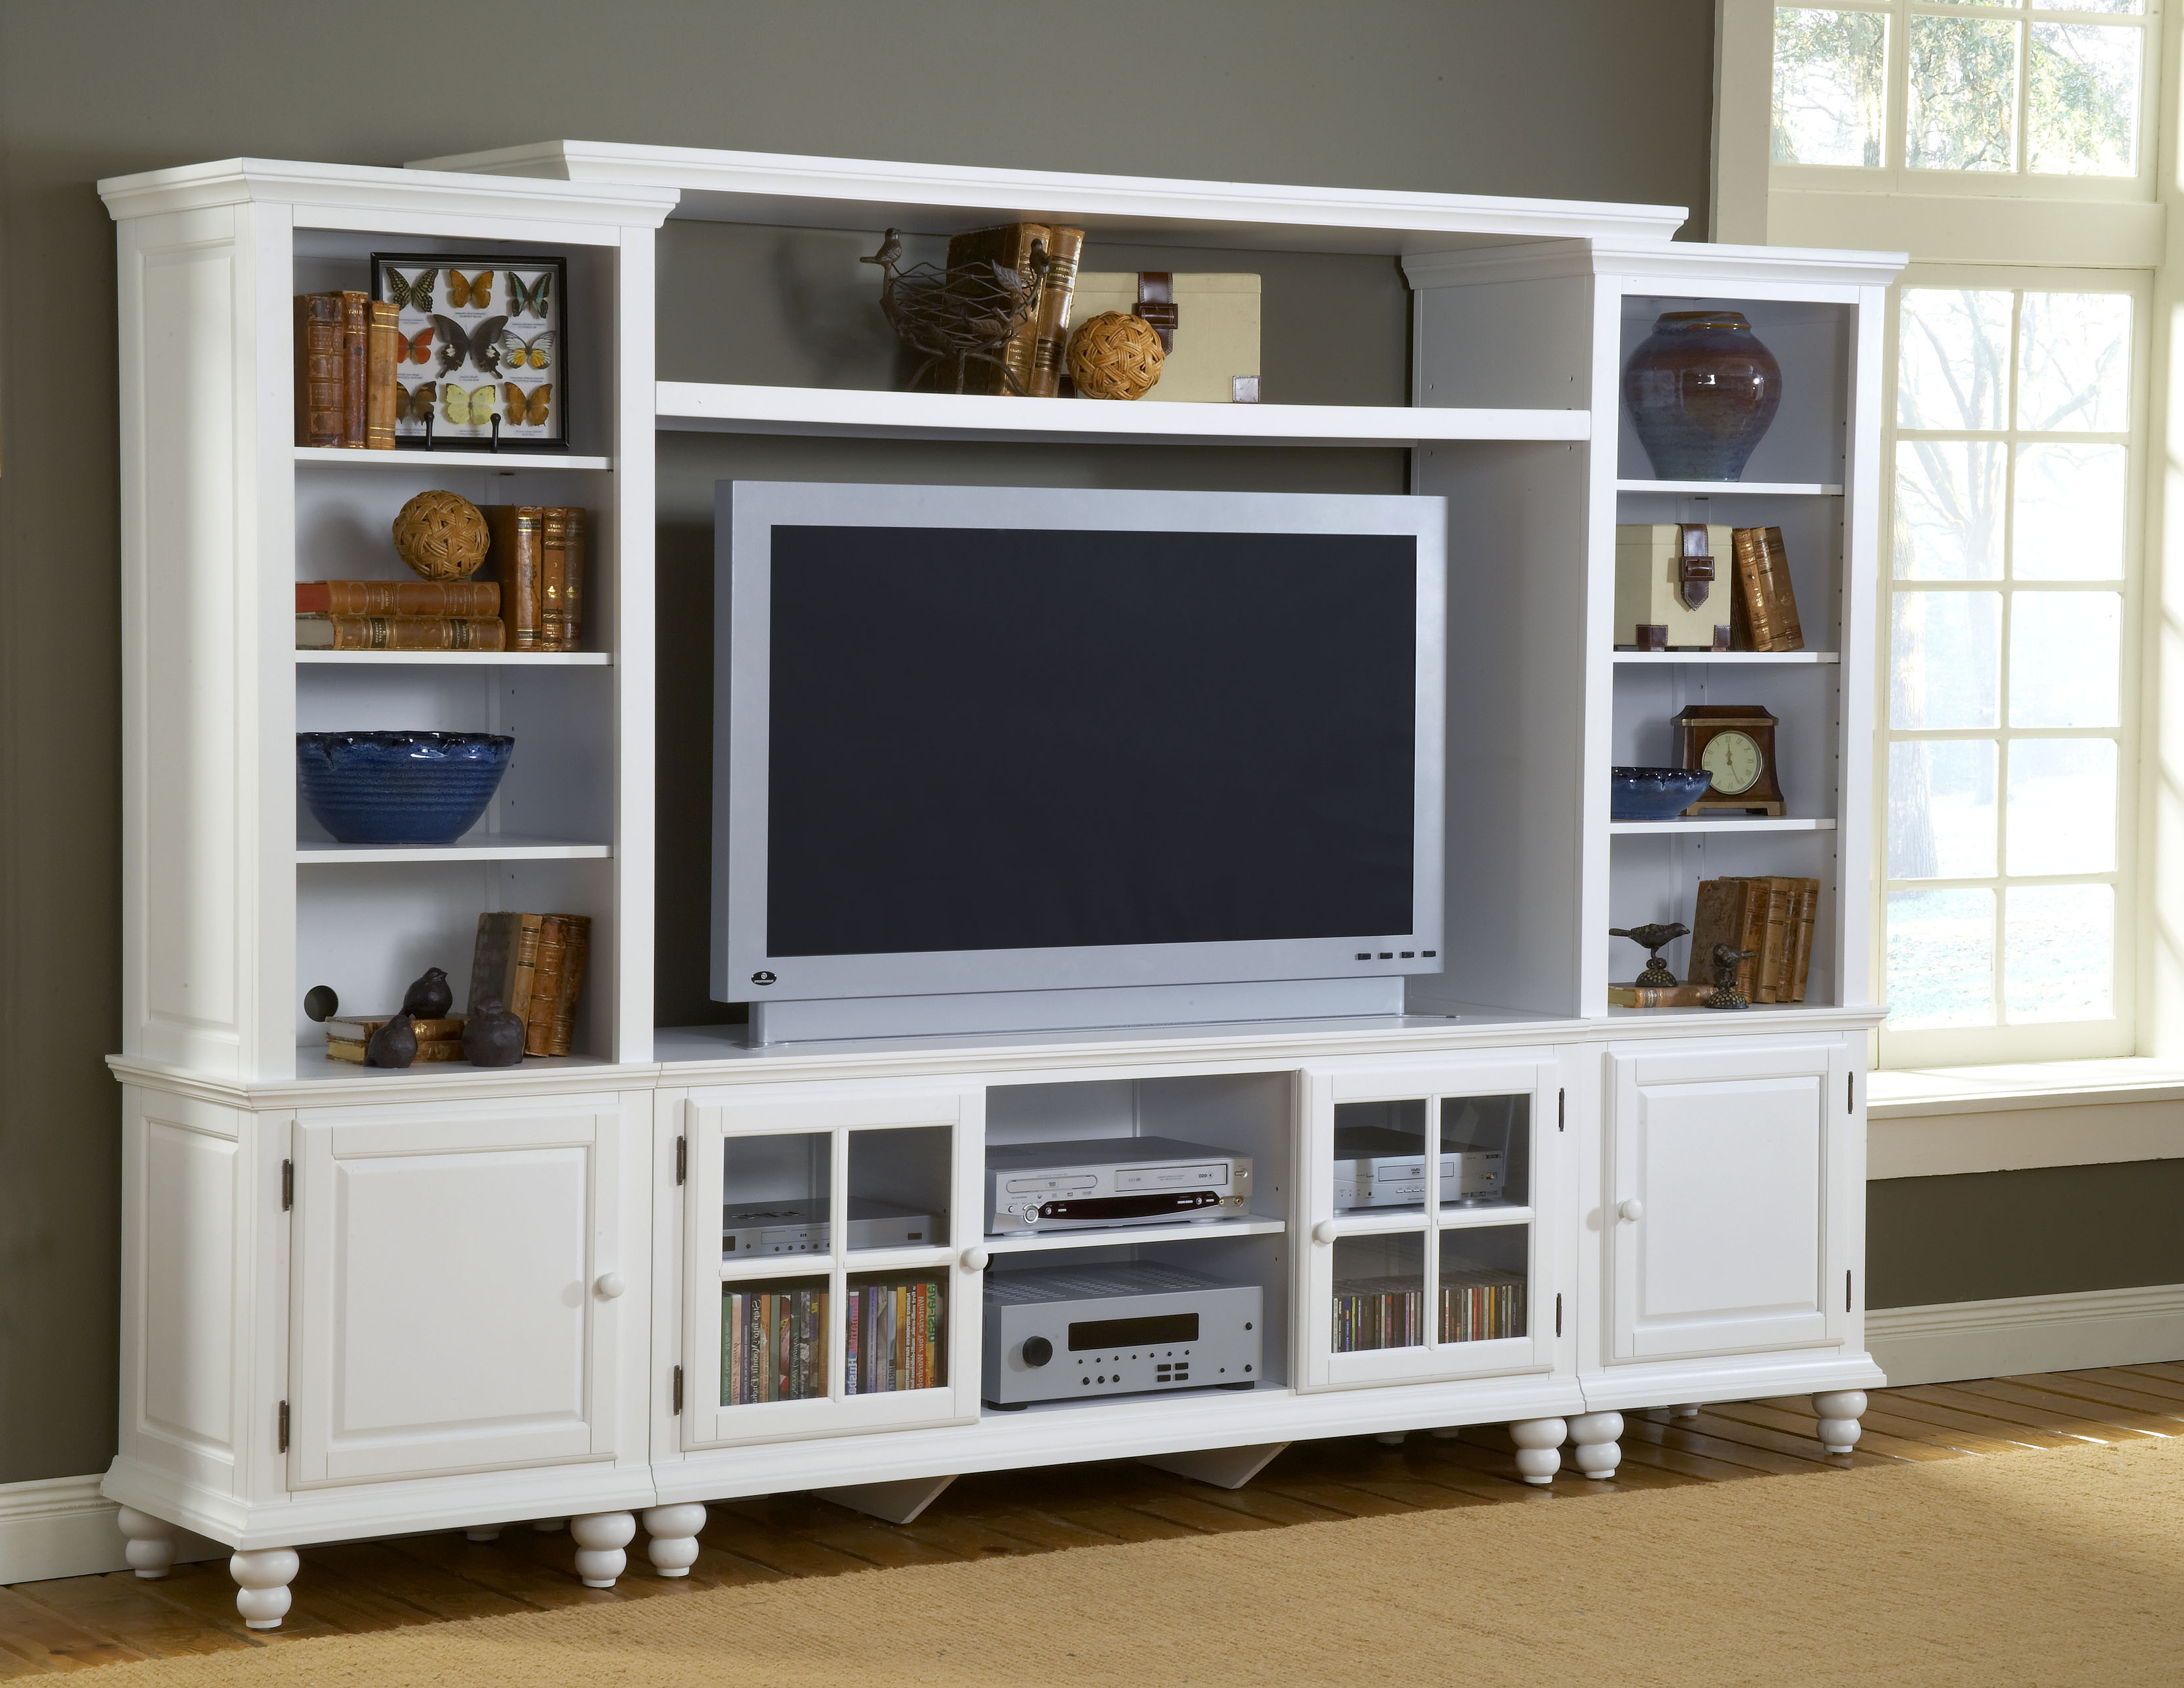 Large Tv Cabinets – Image Cabinets And Shower Mandra Tavern In Current Long White Tv Cabinets (View 7 of 20)